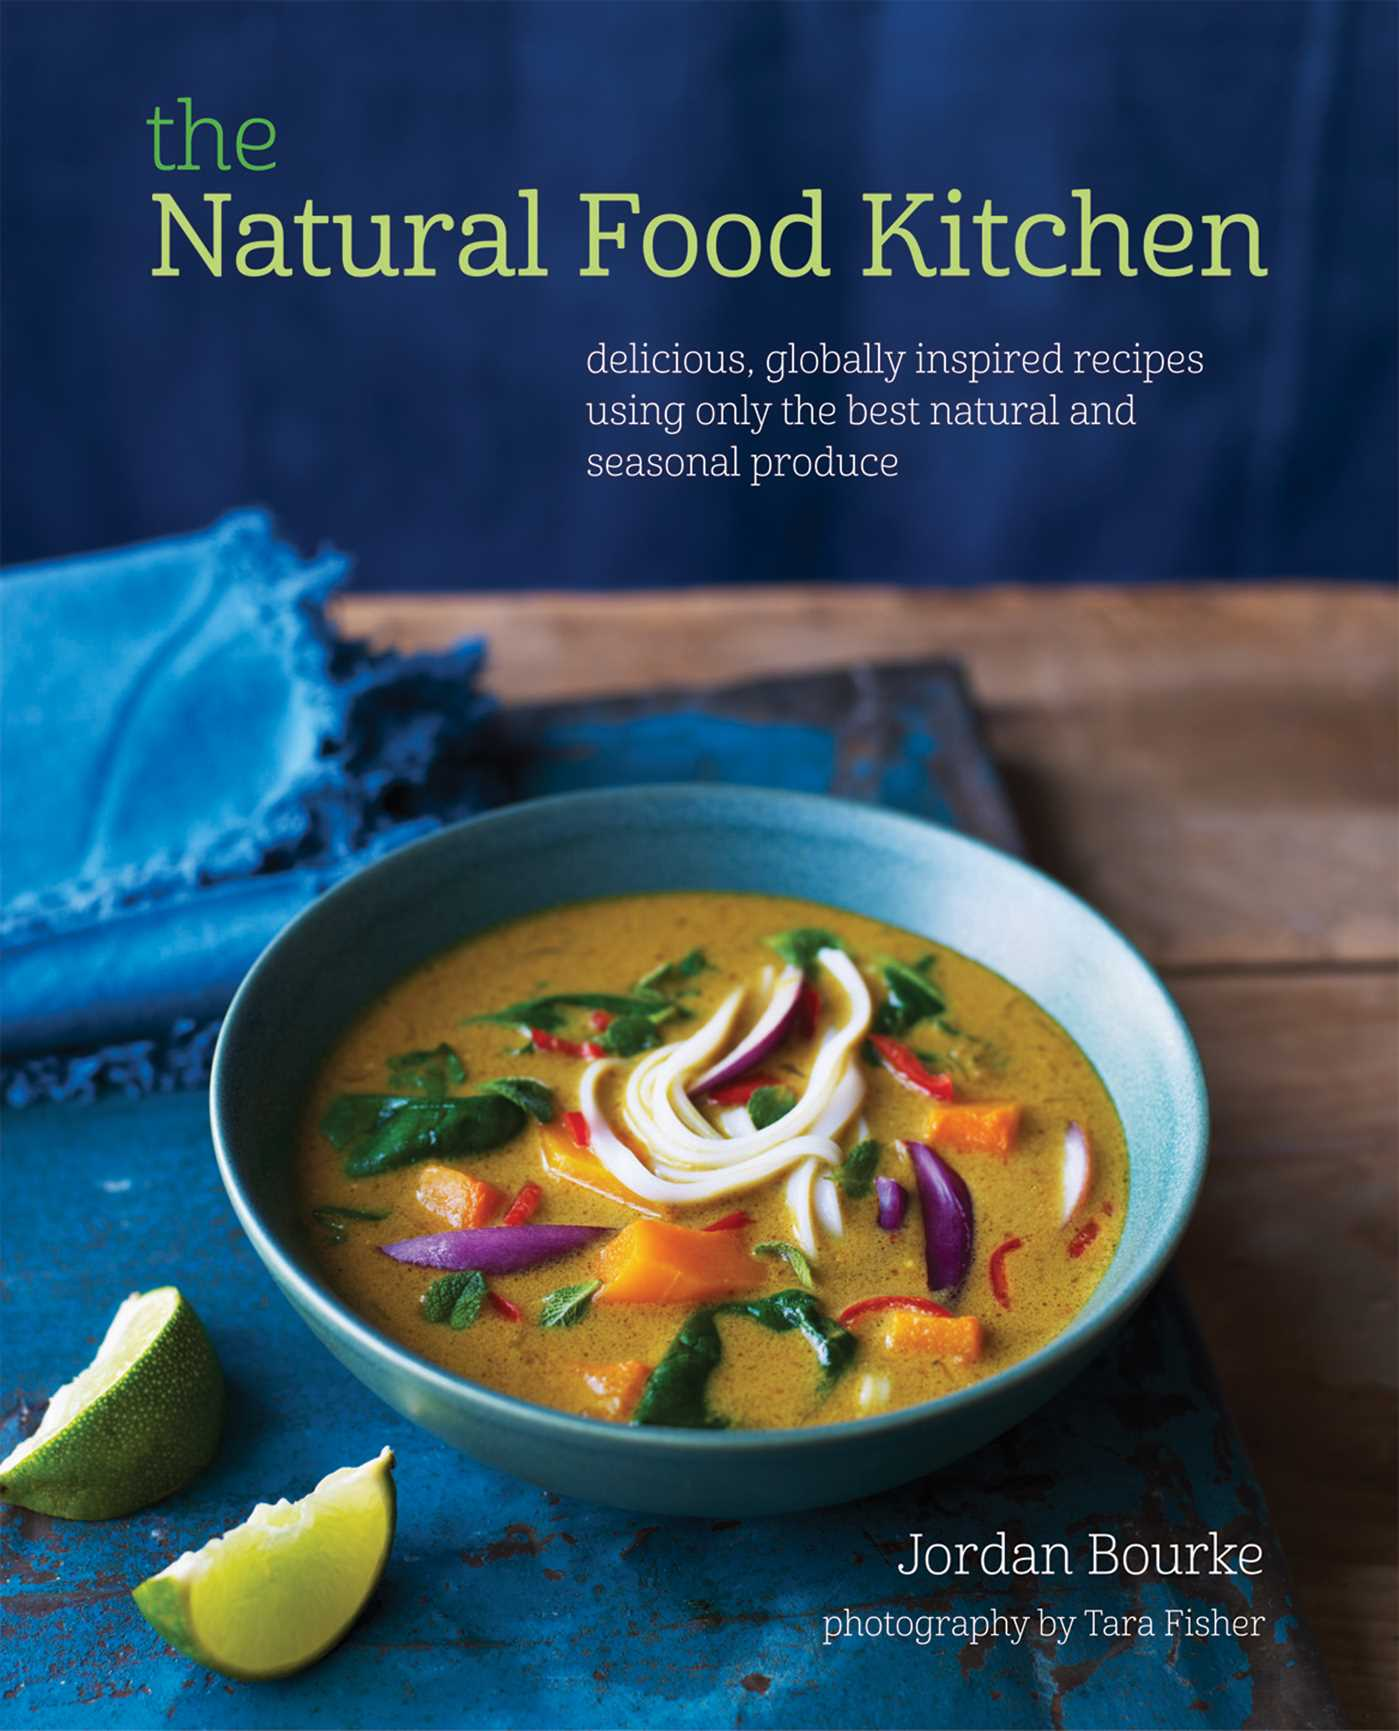 The natural food kitchen book by jordan bourke official the natural food kitchen 9781849755603 hr forumfinder Choice Image